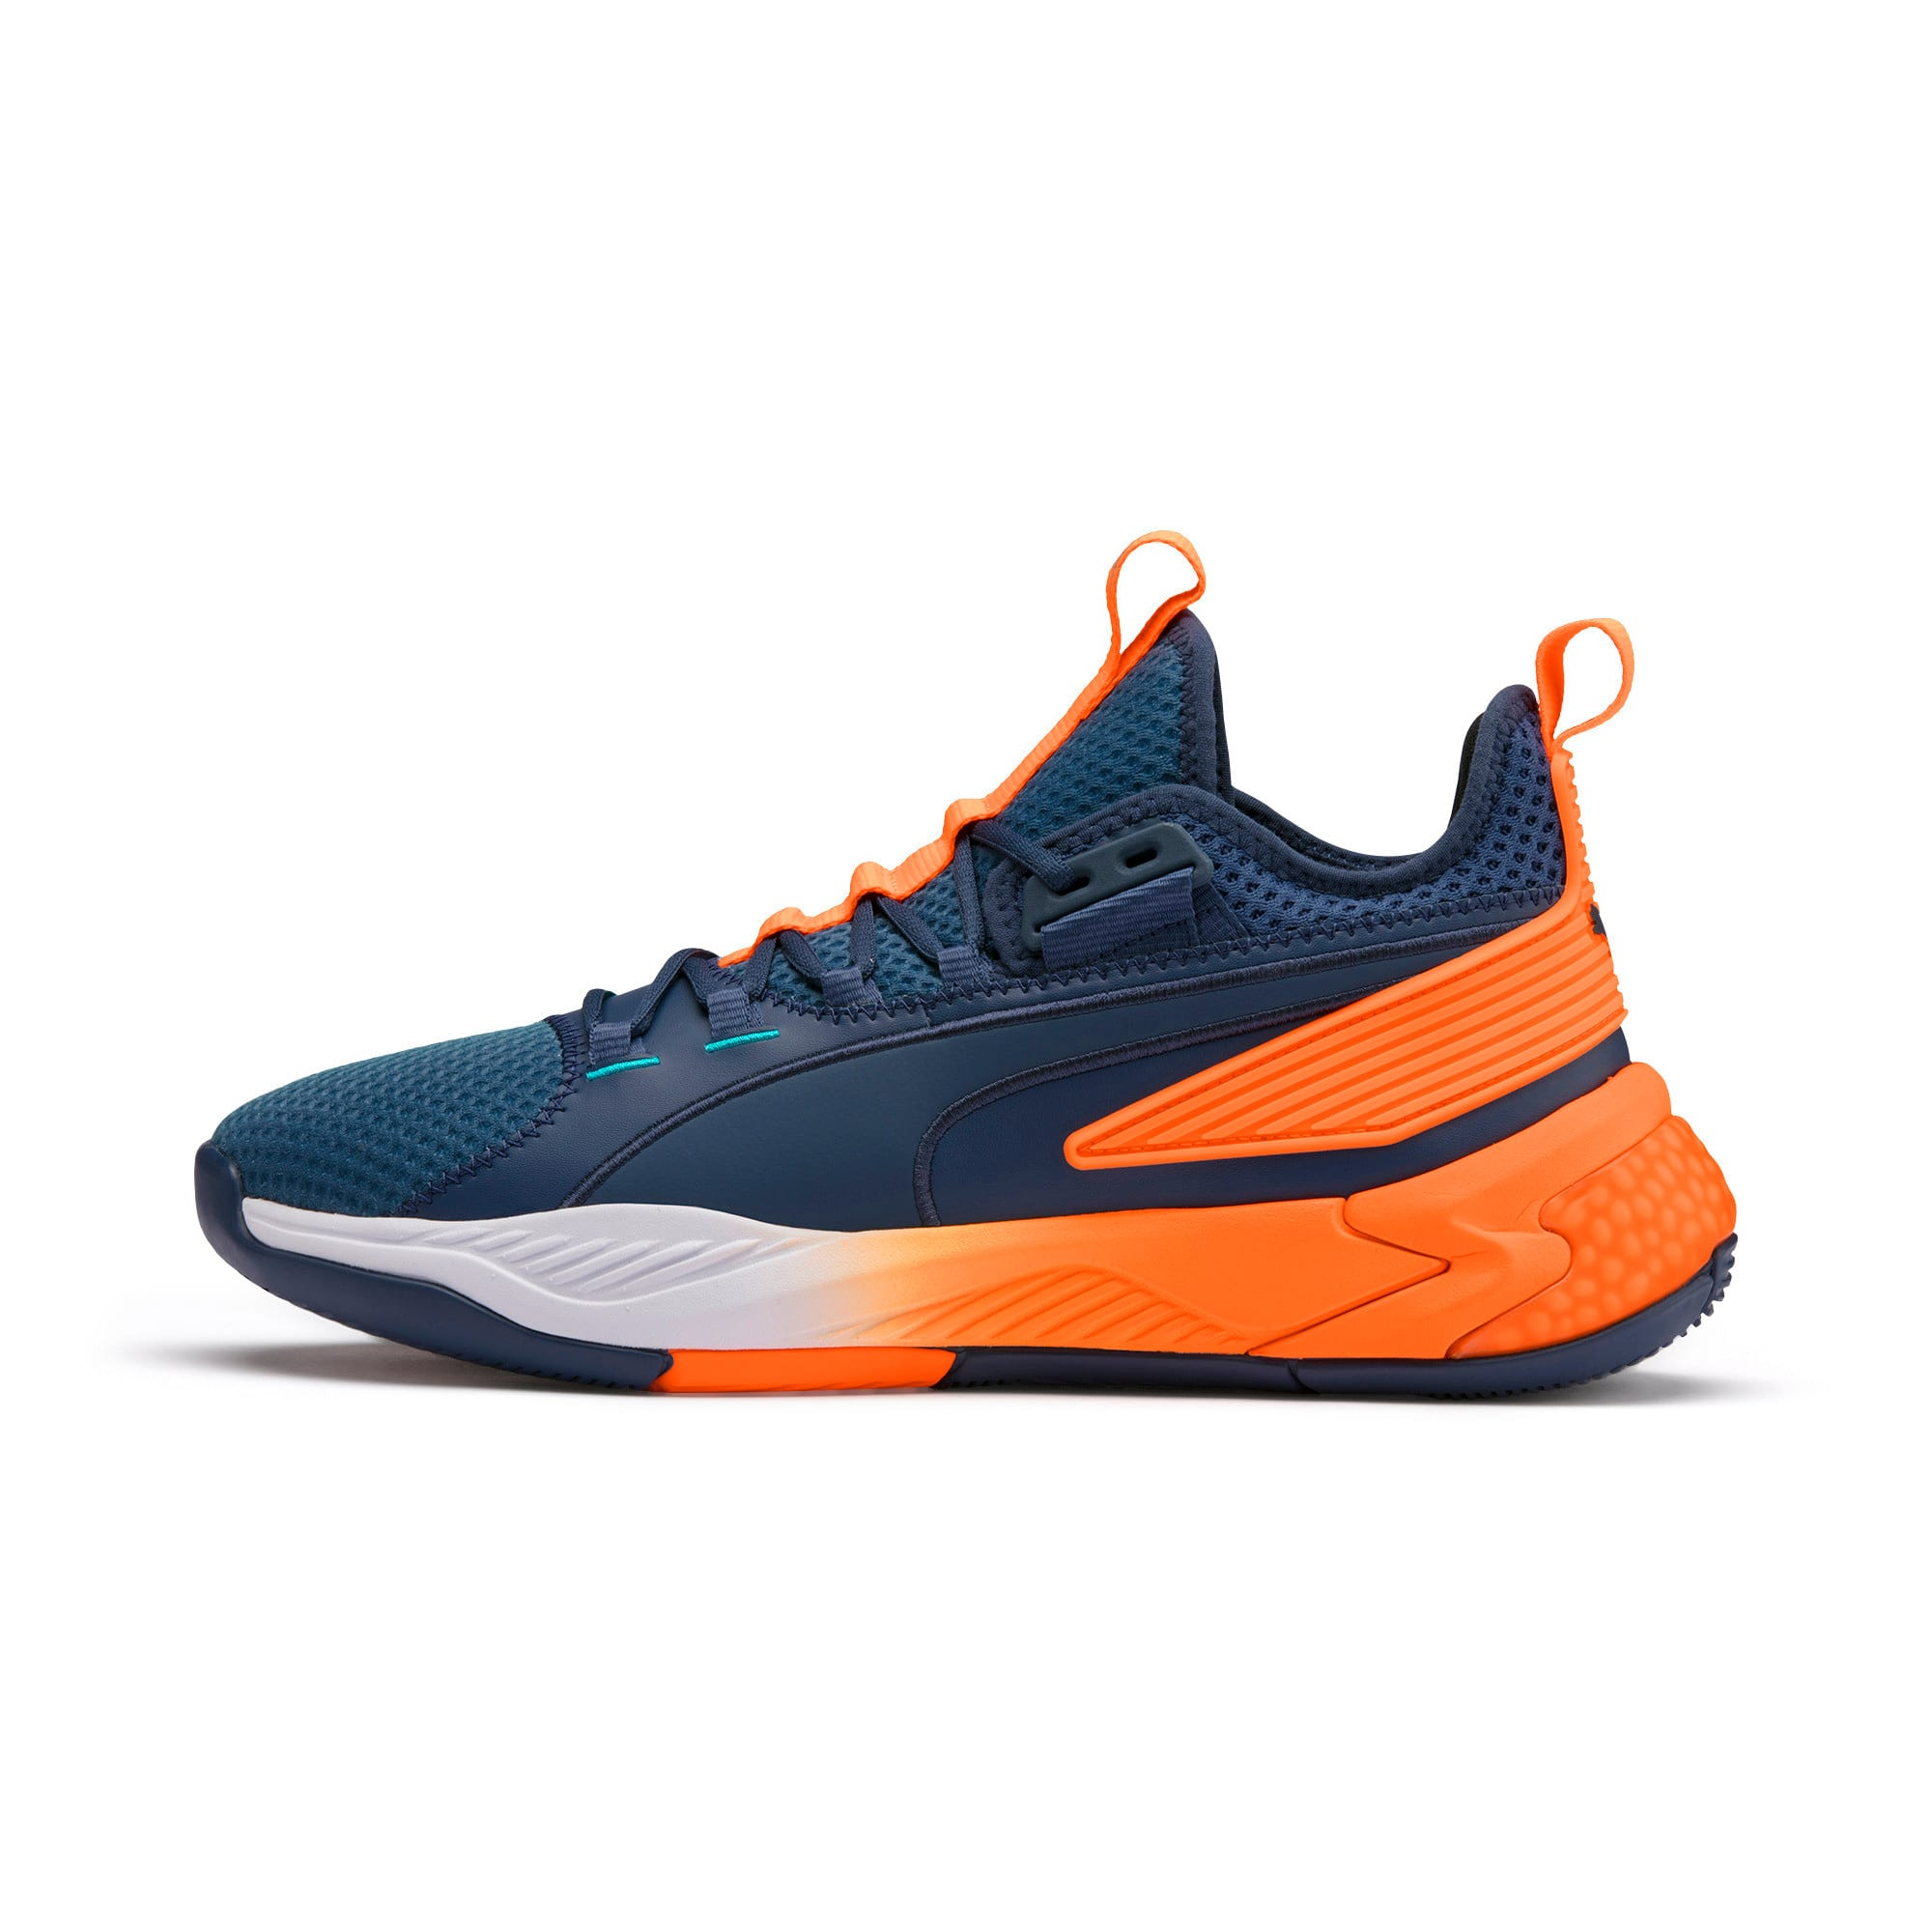 Thumbnail 1 of Uproar Charlotte ASG Fade Basketball Shoes, Orange- PURPLE, medium